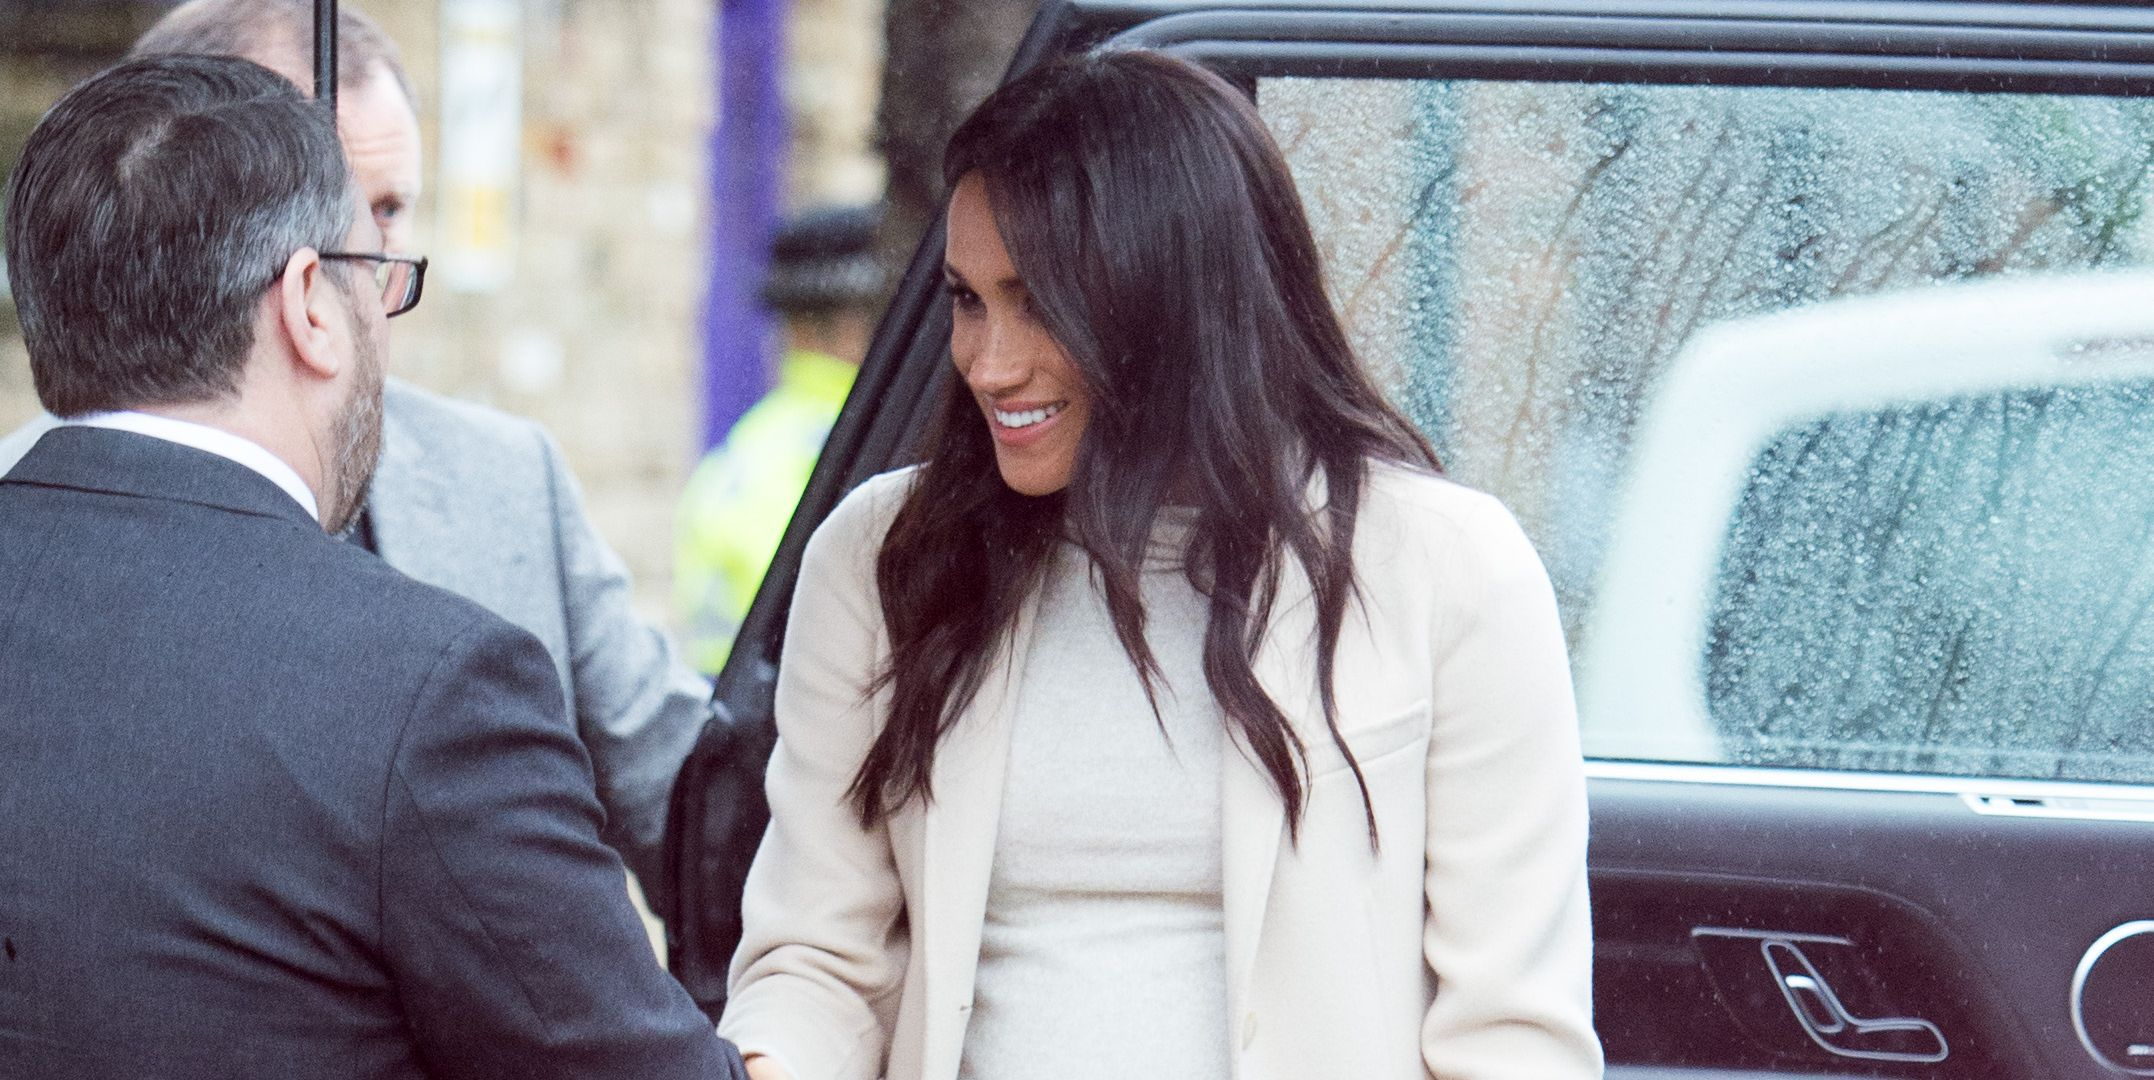 Meghan Markle Pairs Armani with H&M for a Chic Monochrome Neutral Look